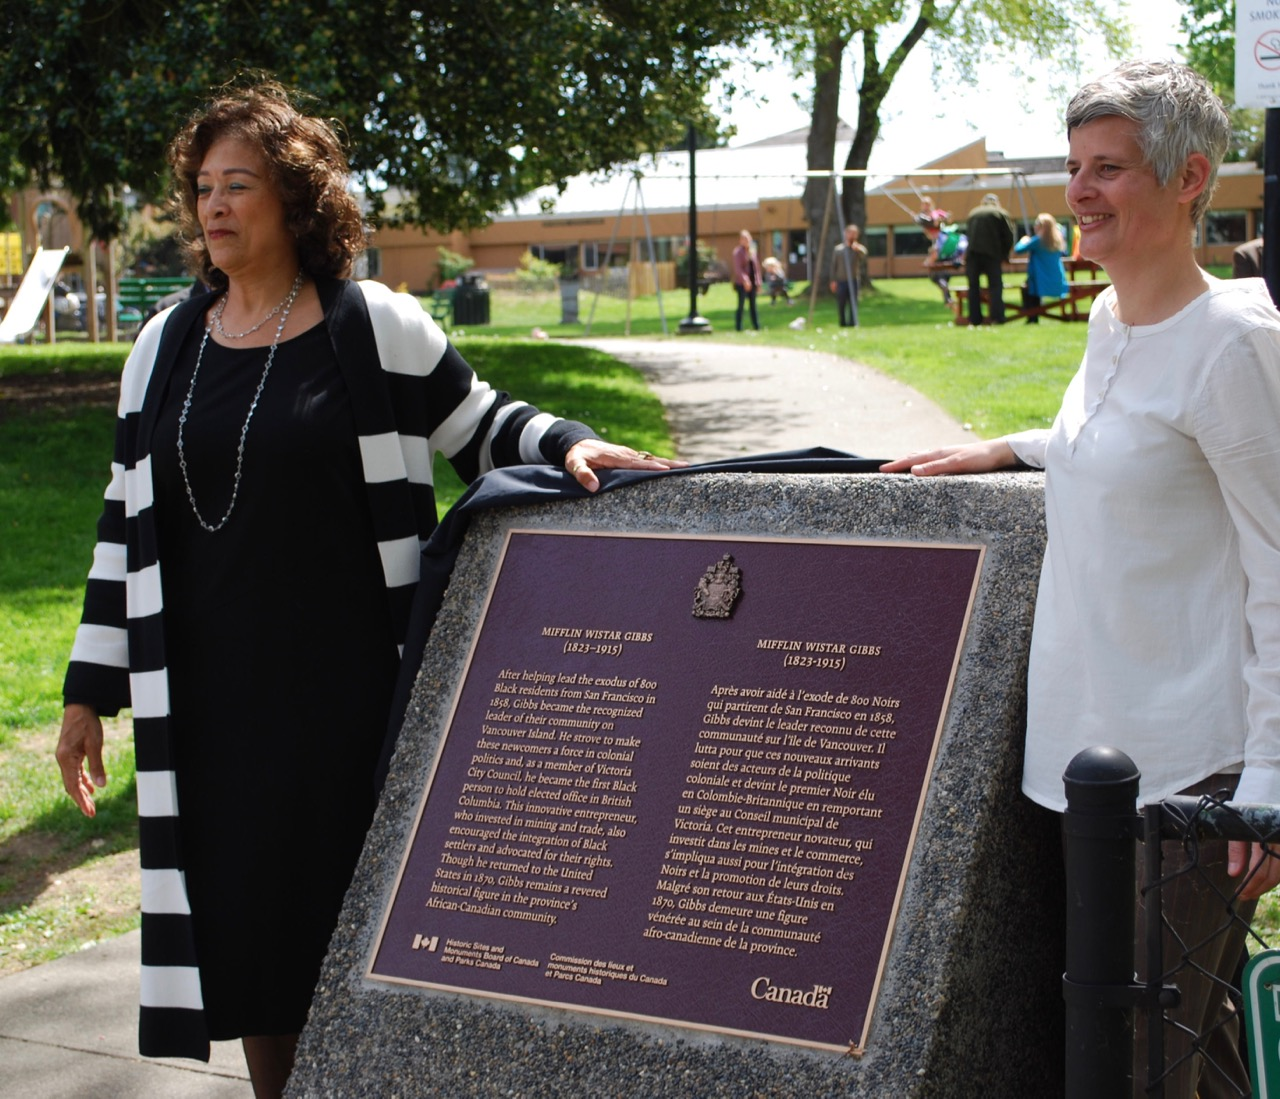 Above Mayor Lisa Helps and Dr. Verna Gibbs unveil plaque honouring Mifflin Wistar Gibbs .  Photo by Robert Hawkes.